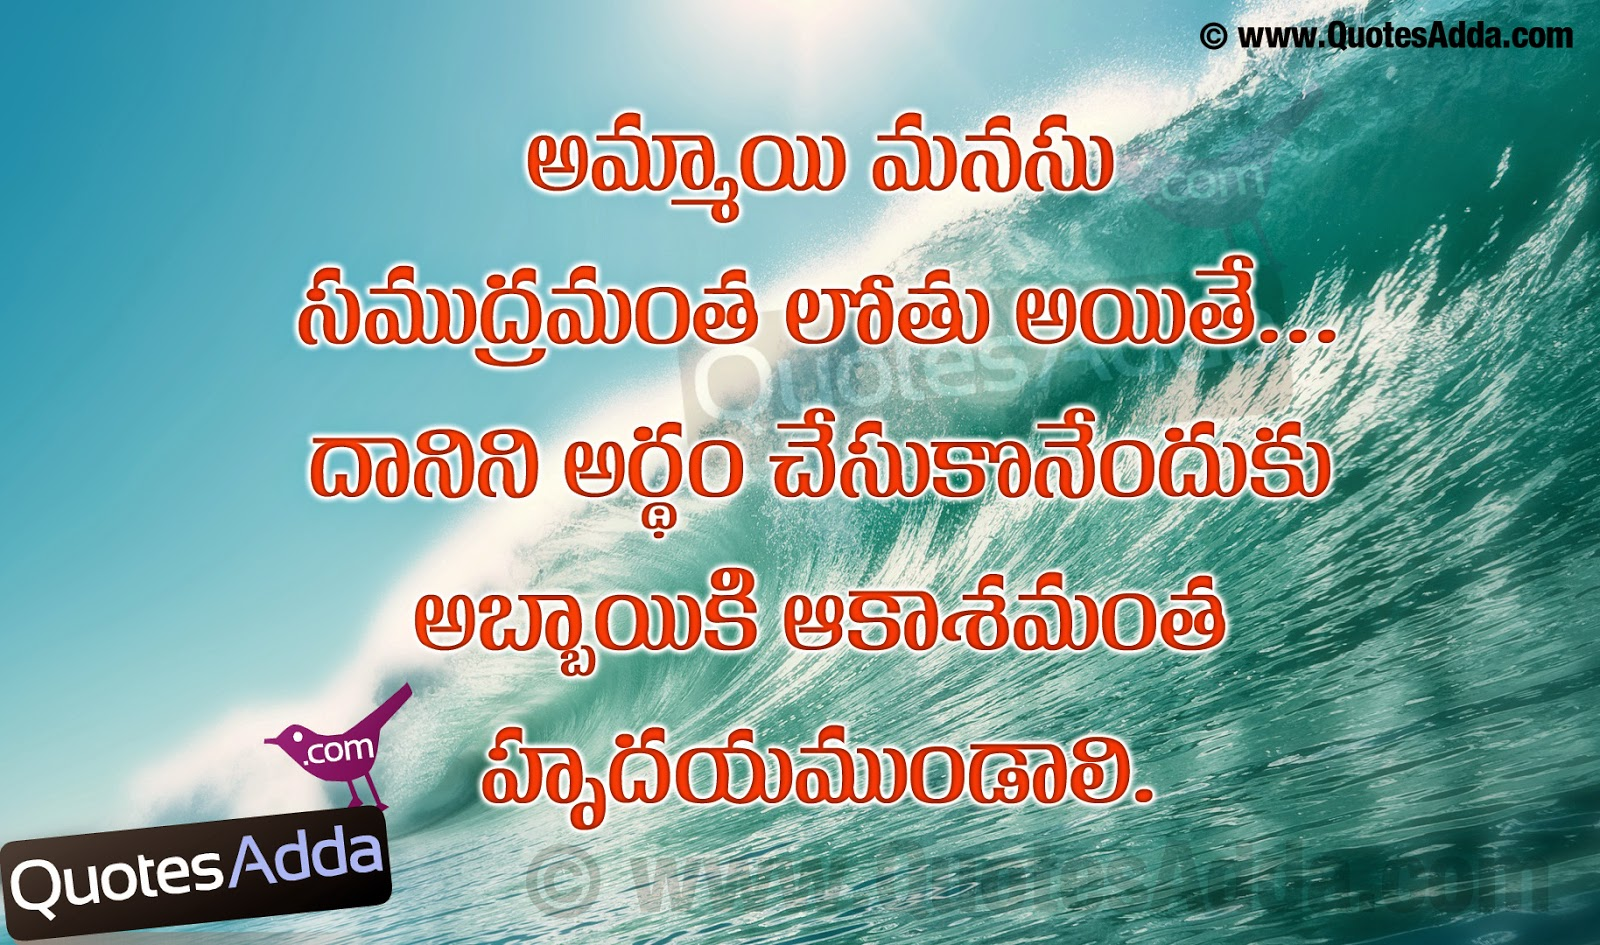 Telugu Love Quotes Enchanting Telugunewlovequotationsjun29Quotesadda 1600×945